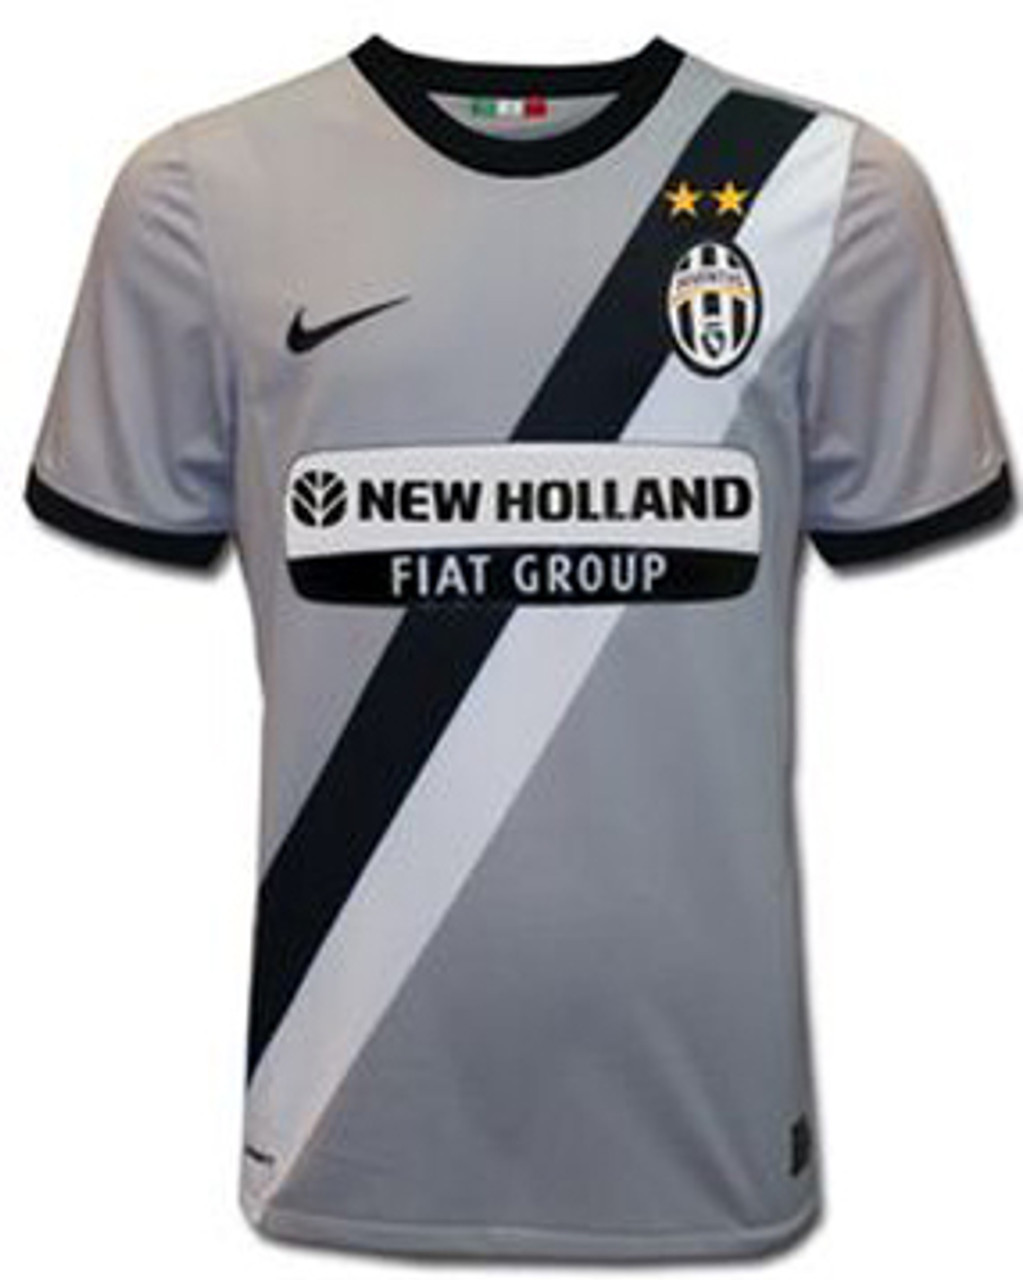 nike juventus 2010 away jersey grey soccer plus nike juventus 2010 away jersey grey